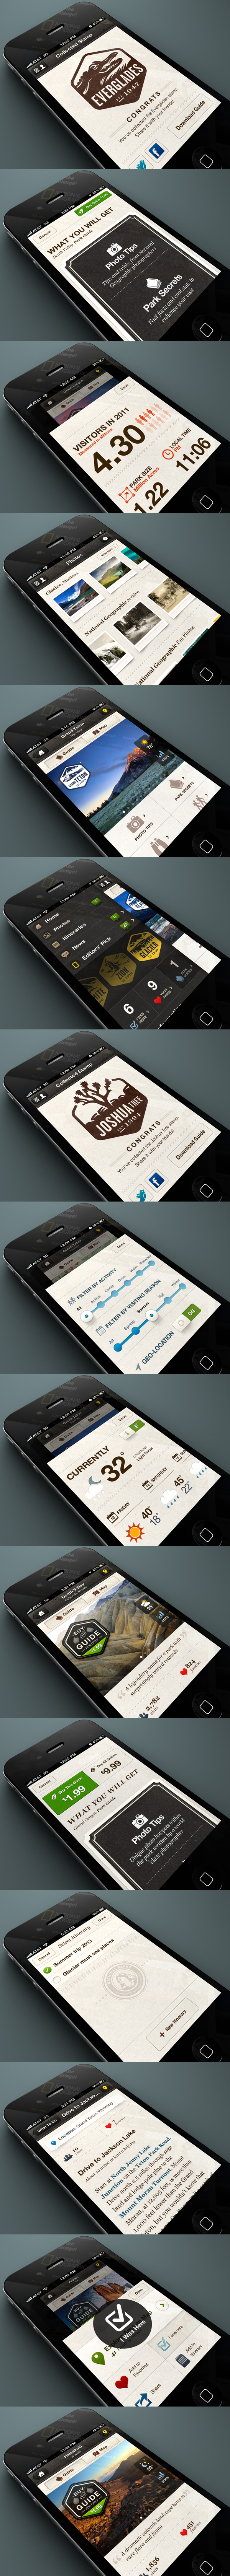 The old IOS 6 style widgets aside, very smooth and clean design.  Nice blending of art style with layout lines and colors.